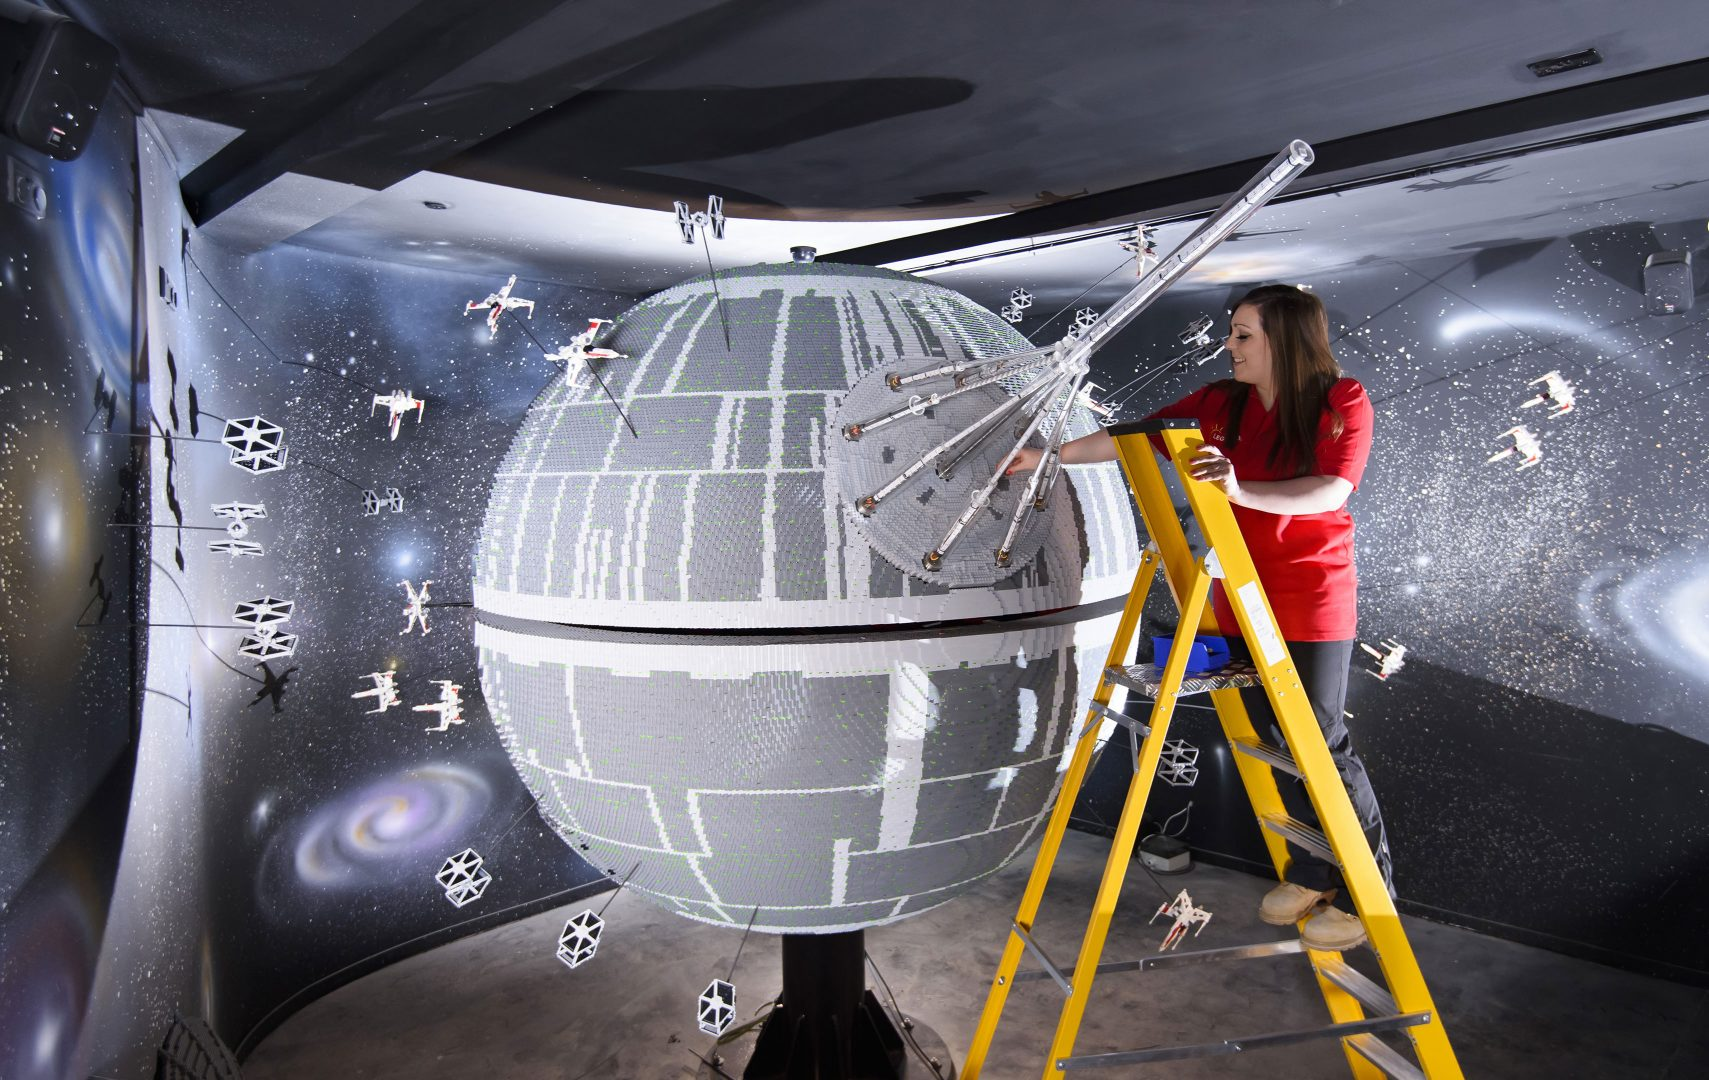 ONE OF THE WORLD'S BIGGEST EVER LEGO® STAR WARS™ MODELS INSTALLED AT THE LEGOLAND® WINDSOR RESORT. LAST PIECES PUT IN PLACE ON 500,000 LEGO® BRICK DEATH STAR. LEGOLAND® Model Maker, Phoebe Rumbol, puts the finishing touches to one of the most impressive and biggest LEGO® Star Wars™ models ever created as a 500,000 brick LEGO® Star Wars™ recreation of The Death Star is installed in a new finale to the Resort's LEGO® Star Wars™ Miniland Model Display. The operation took three days as the massive new 2.4 metre wide, 3 metre high creation was carefully hoisted into position and the final bricks  were put in place. The hefty 860kg perfectly spherical model took 15 Model Makers three months to build and  guests can trigger special effects and bring the scene to life when it opens at the Resort on 11 March.